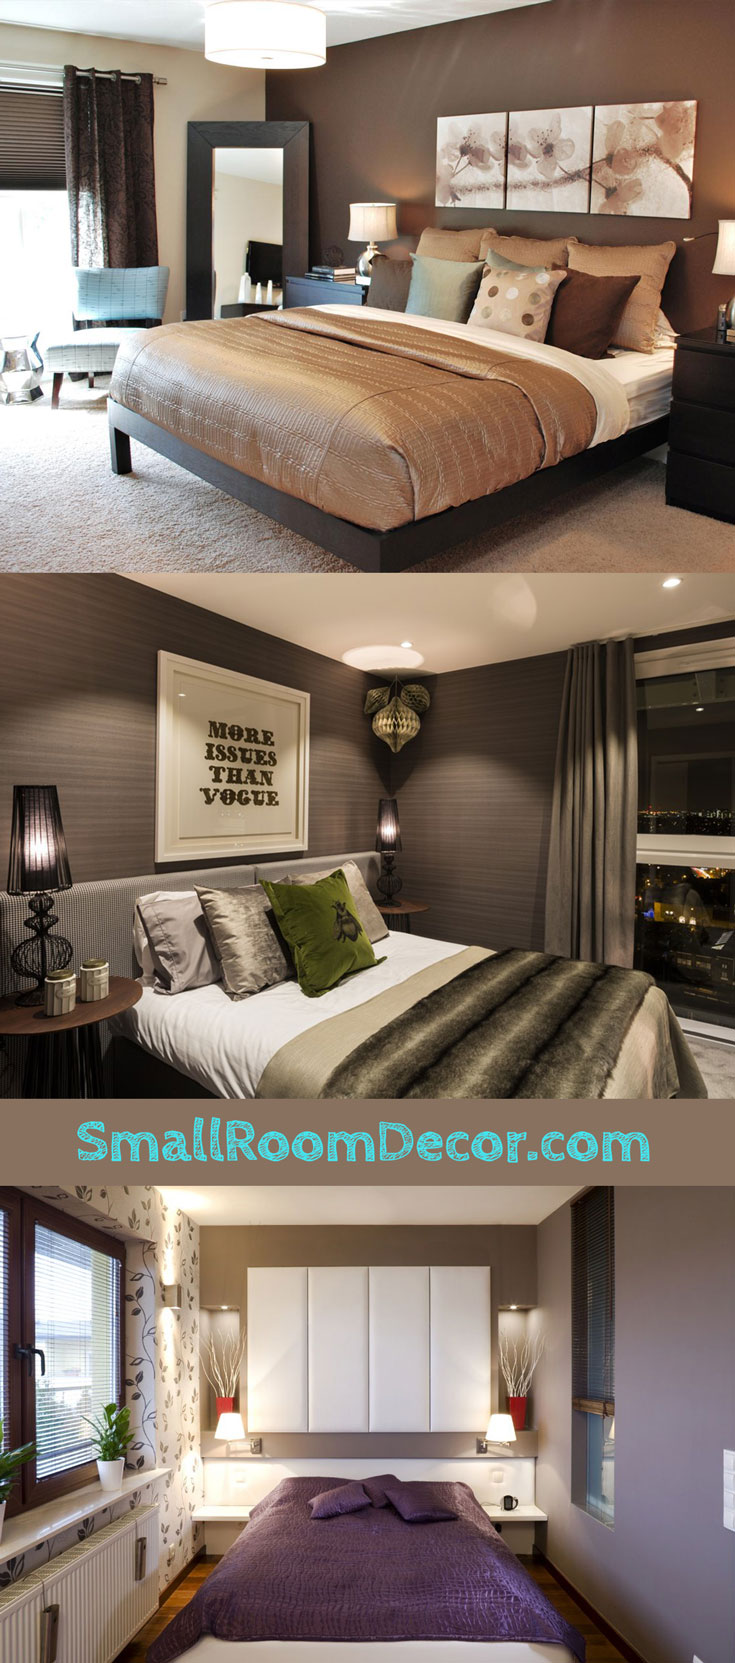 #brown turquoise #smallbedroom wall color